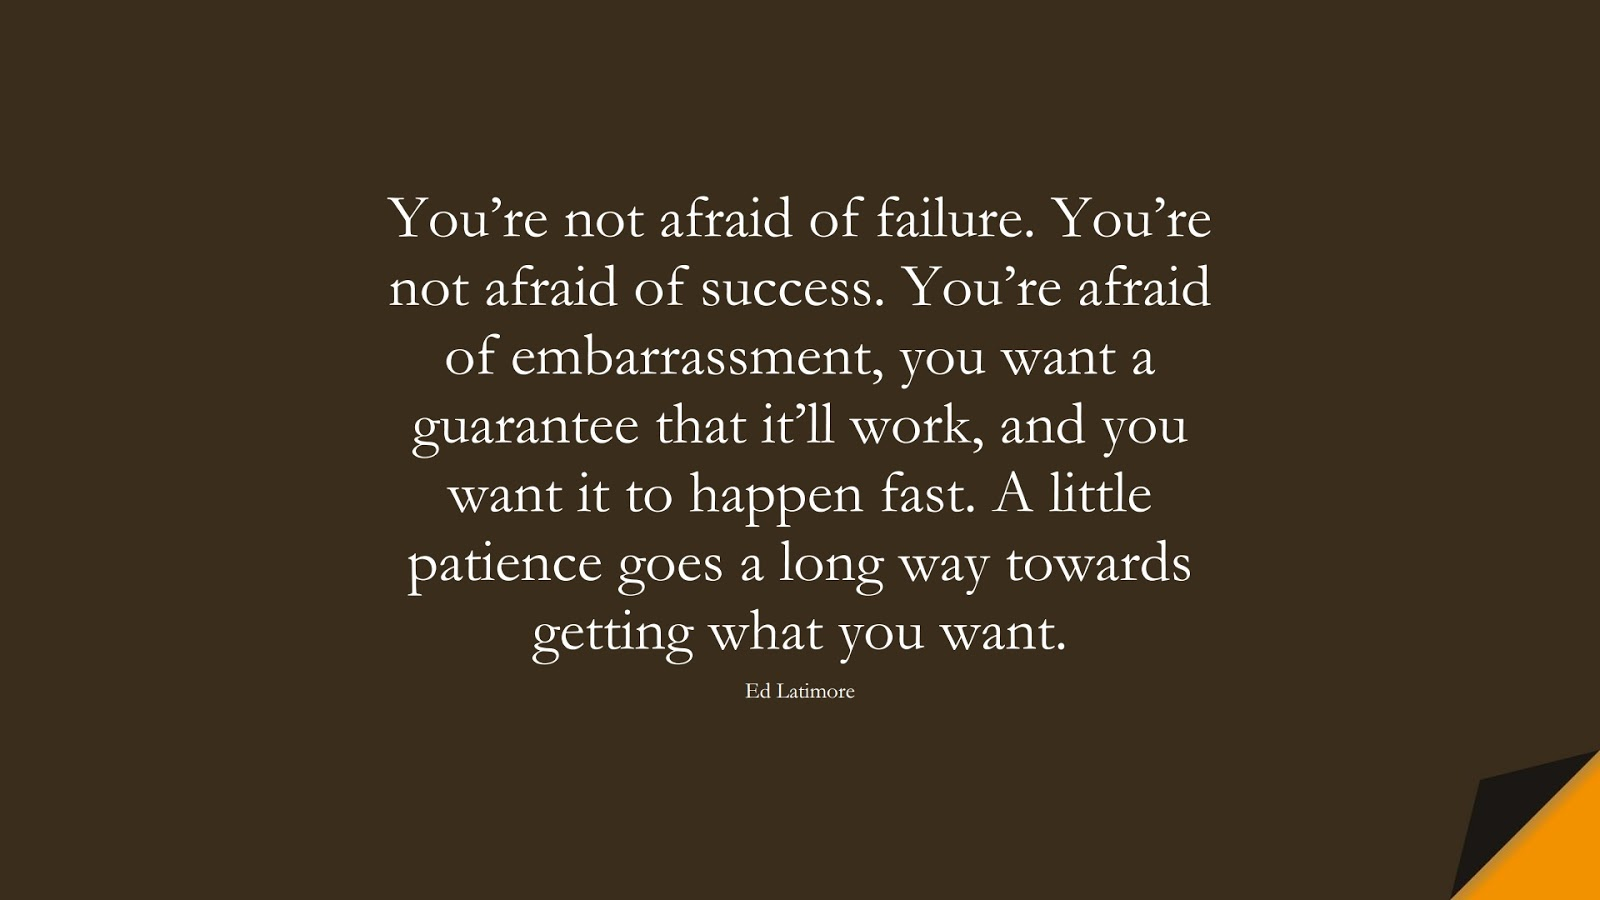 You're not afraid of failure. You're not afraid of success. You're afraid of embarrassment, you want a guarantee that it'll work, and you want it to happen fast. A little patience goes a long way towards getting what you want. (Ed Latimore);  #PerseveranceQuotes